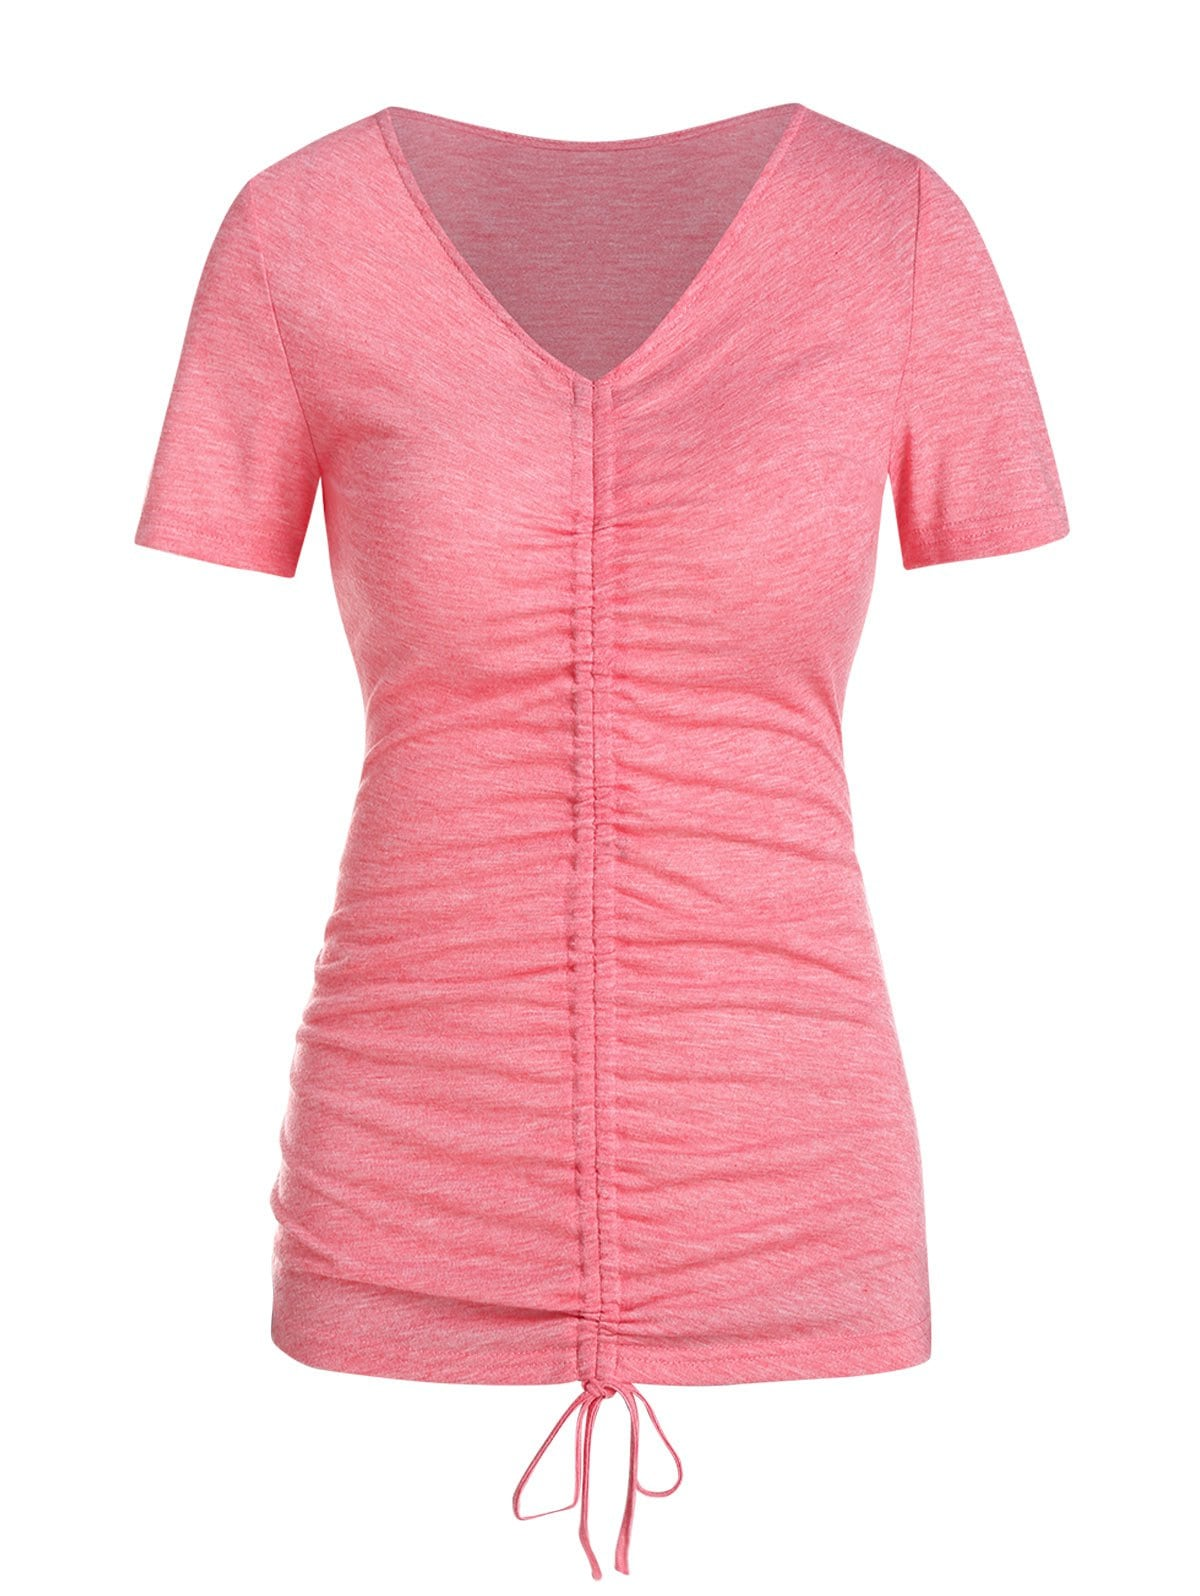 Short Sleeve Cinched Heathered T-shirt